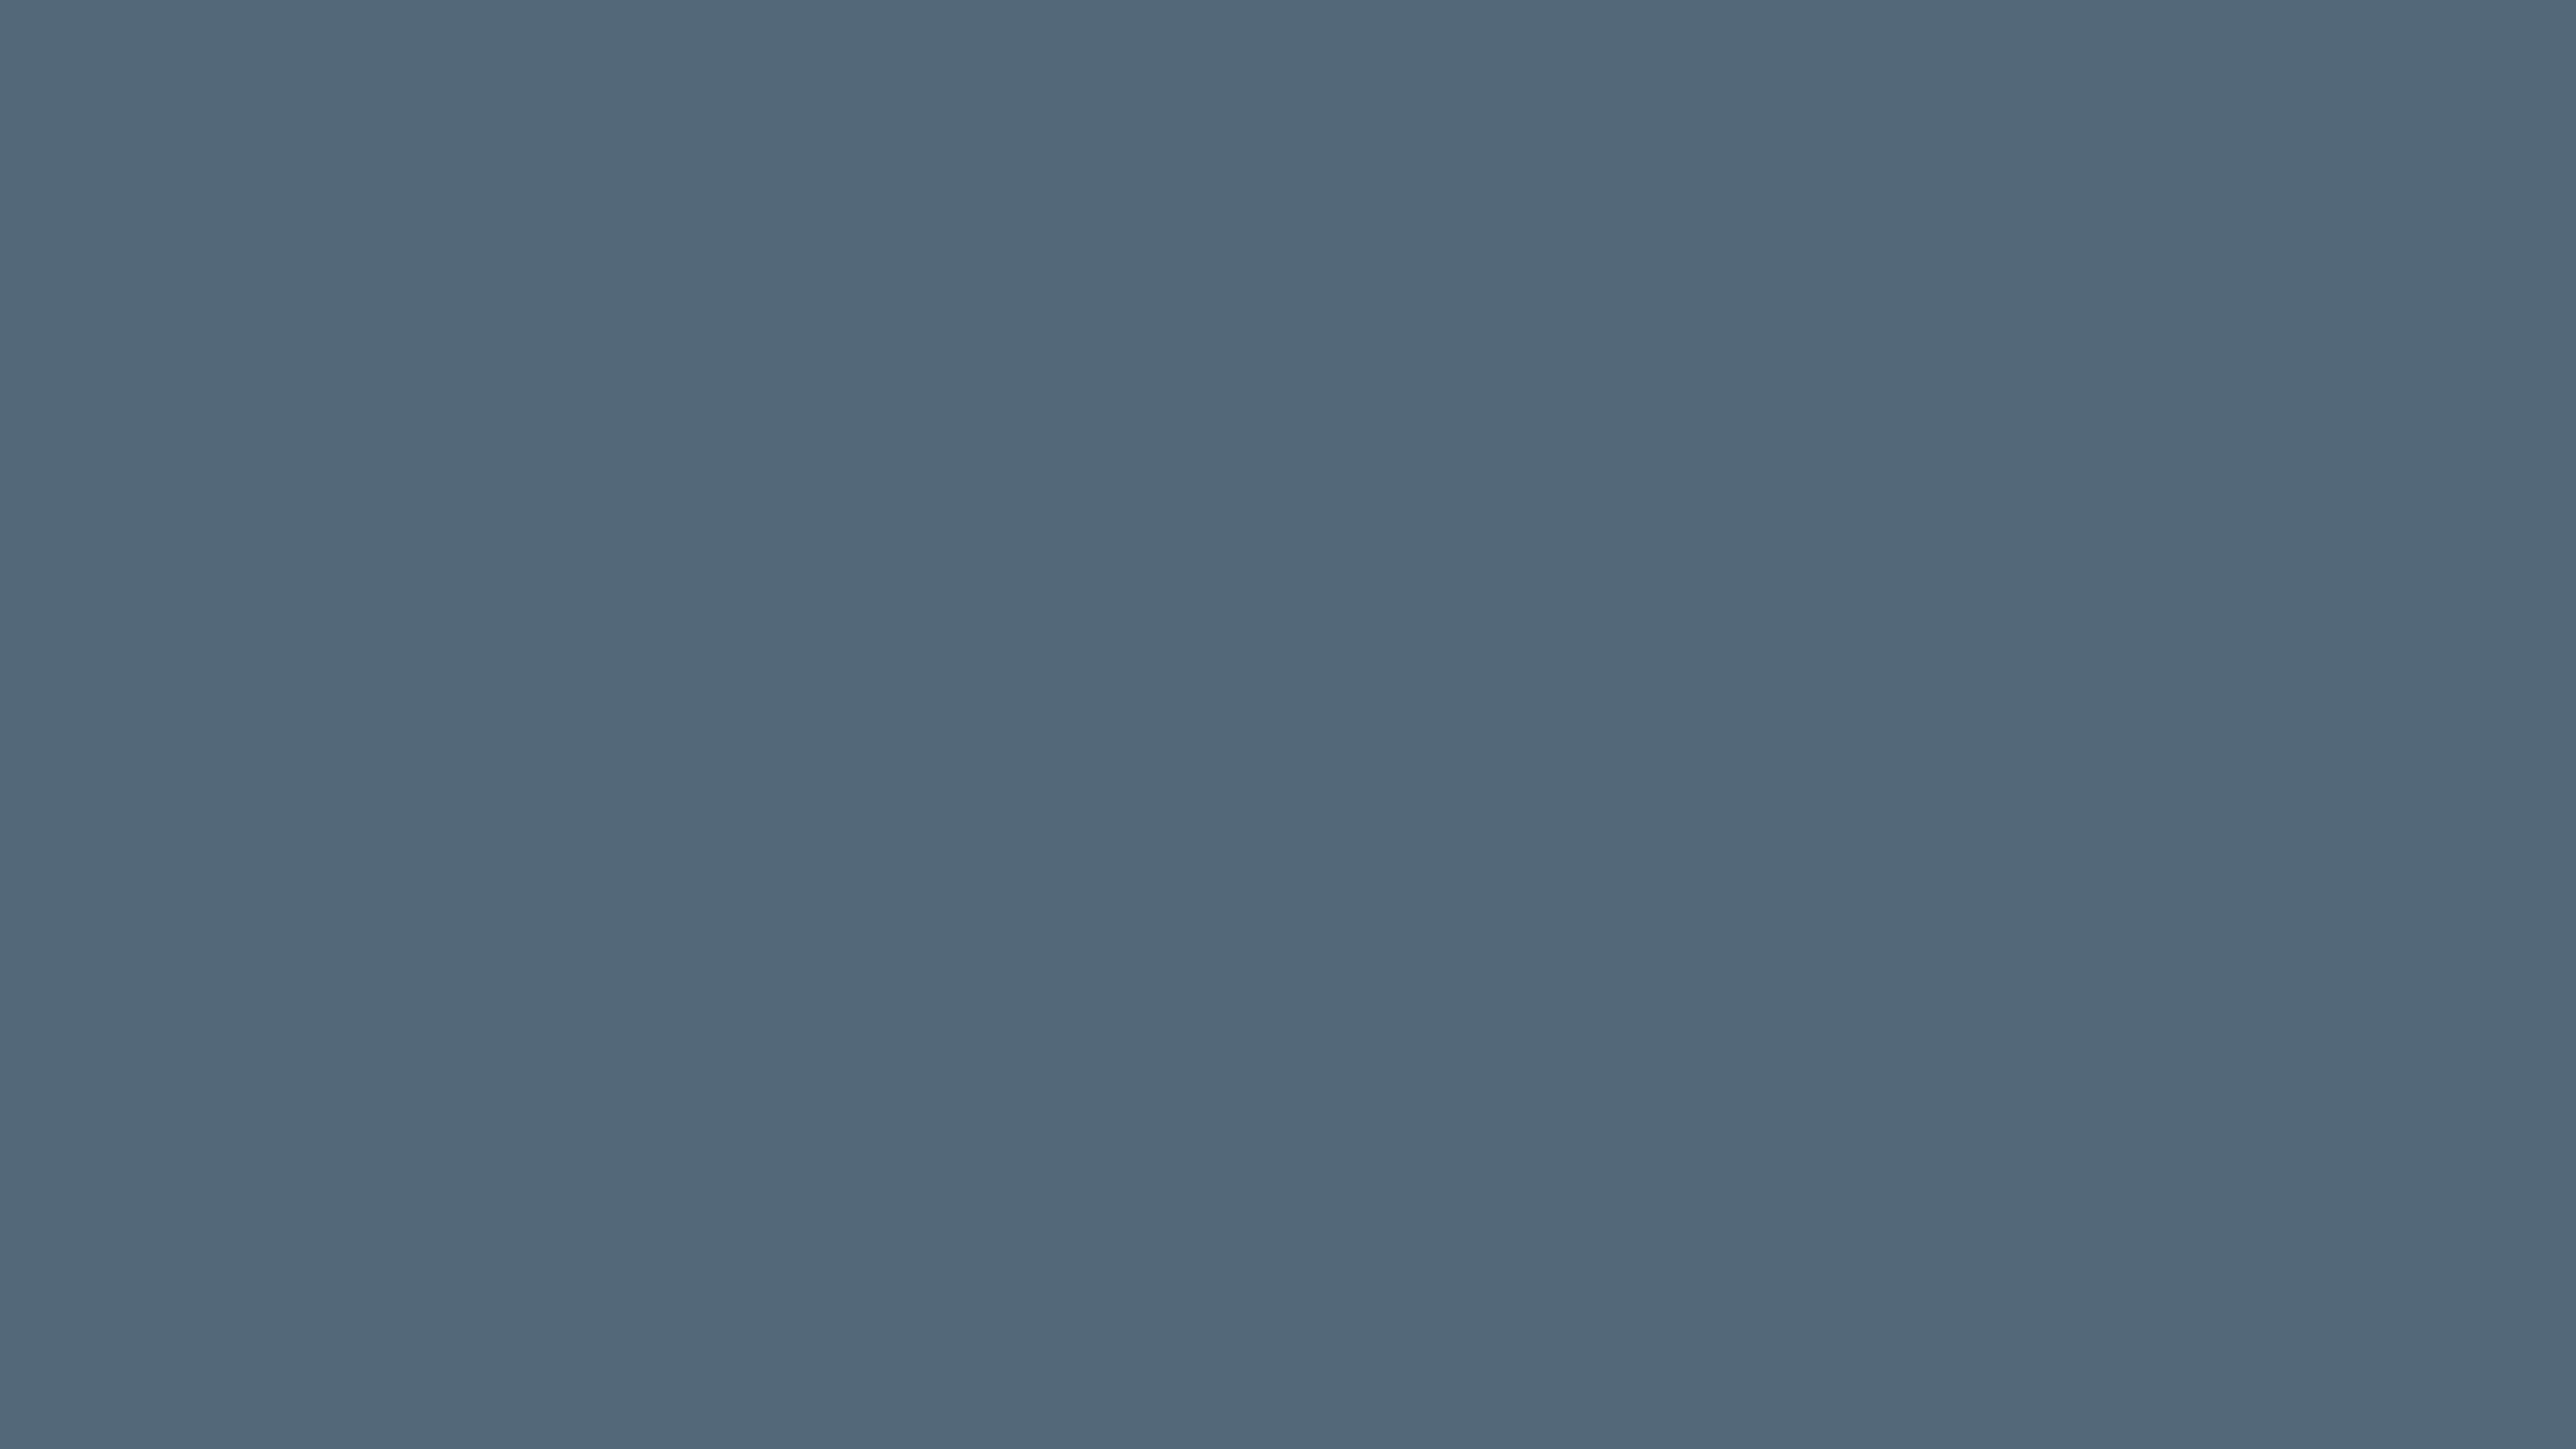 3840x2160 Paynes Grey Solid Color Background